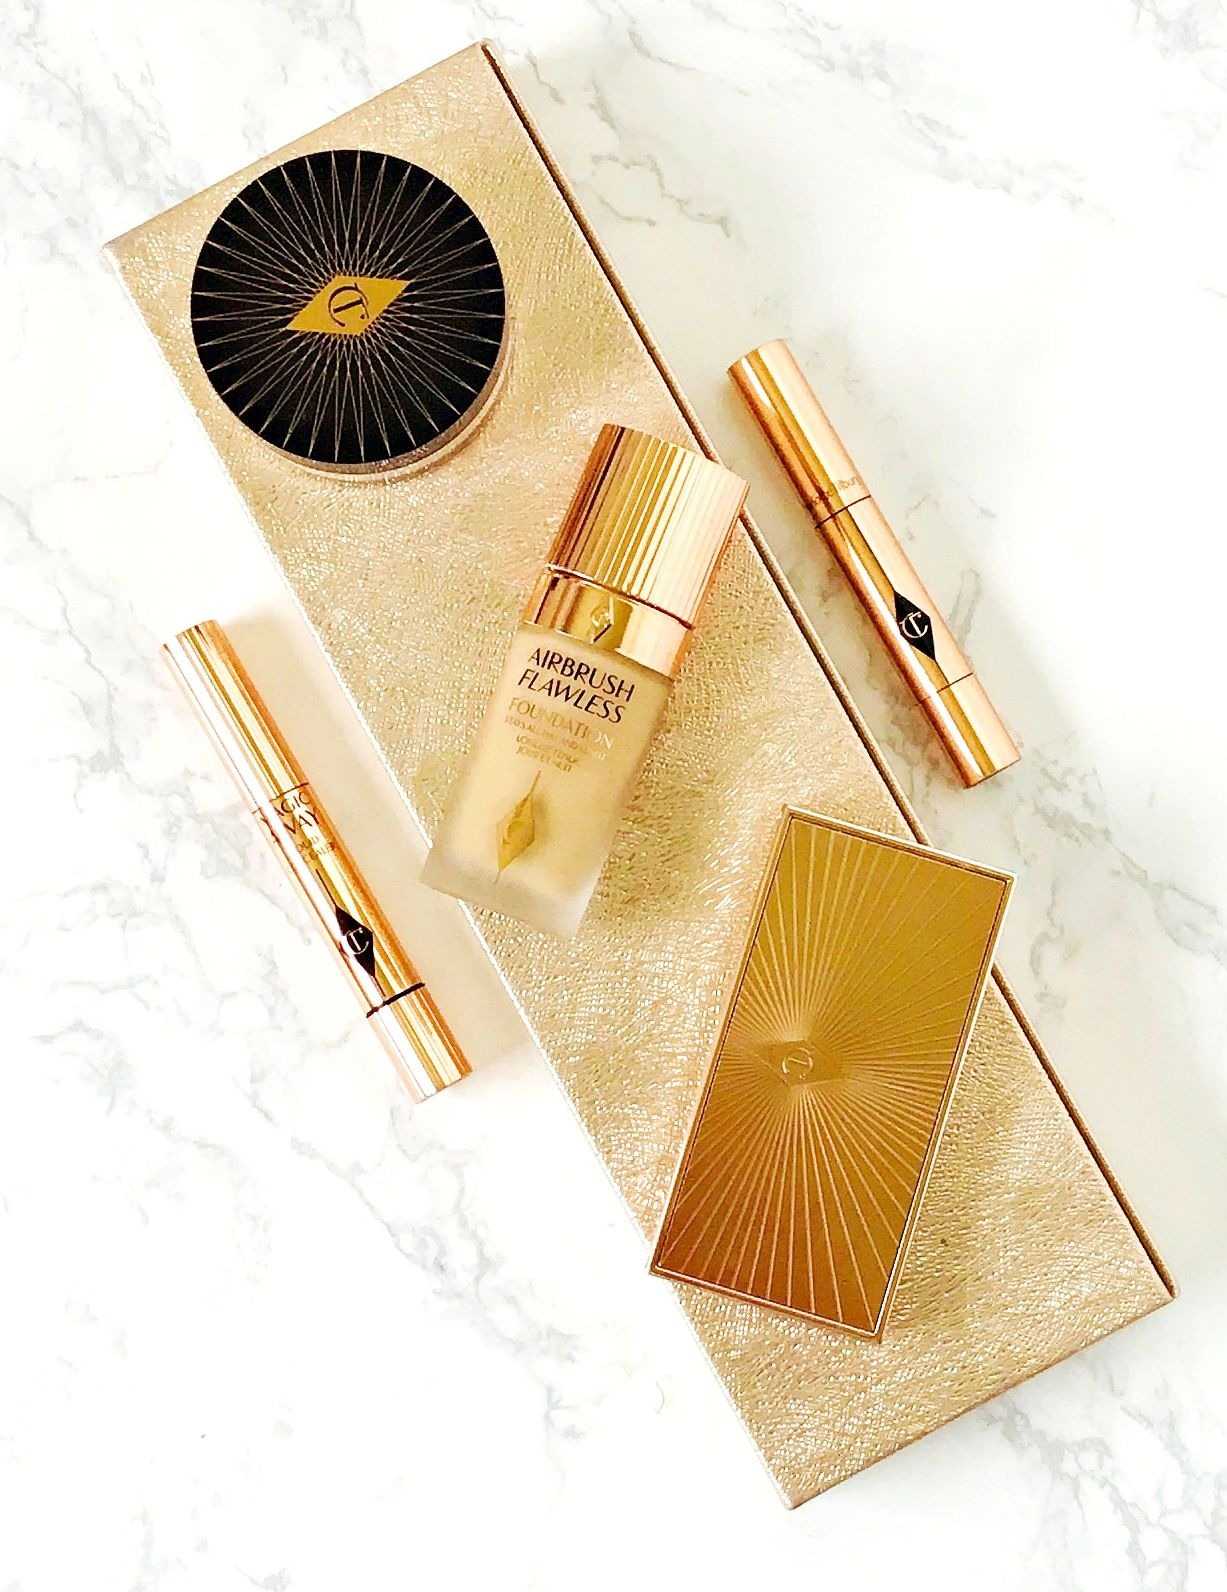 Charlotte Tilbury Airbrush Flawless Foundation Dry Skin Review, Charlotte Tilbury Airbrush Flawless Foundation Review